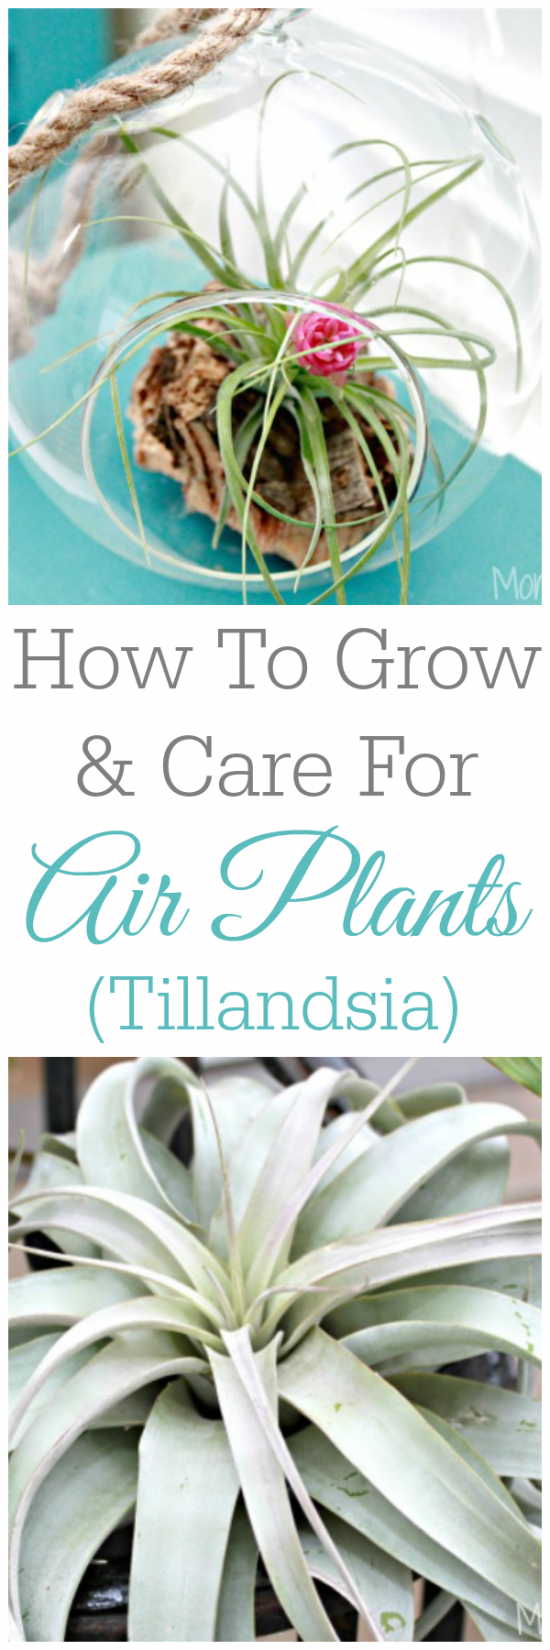 How To Grow And Care For Tillandsia or Air Plants